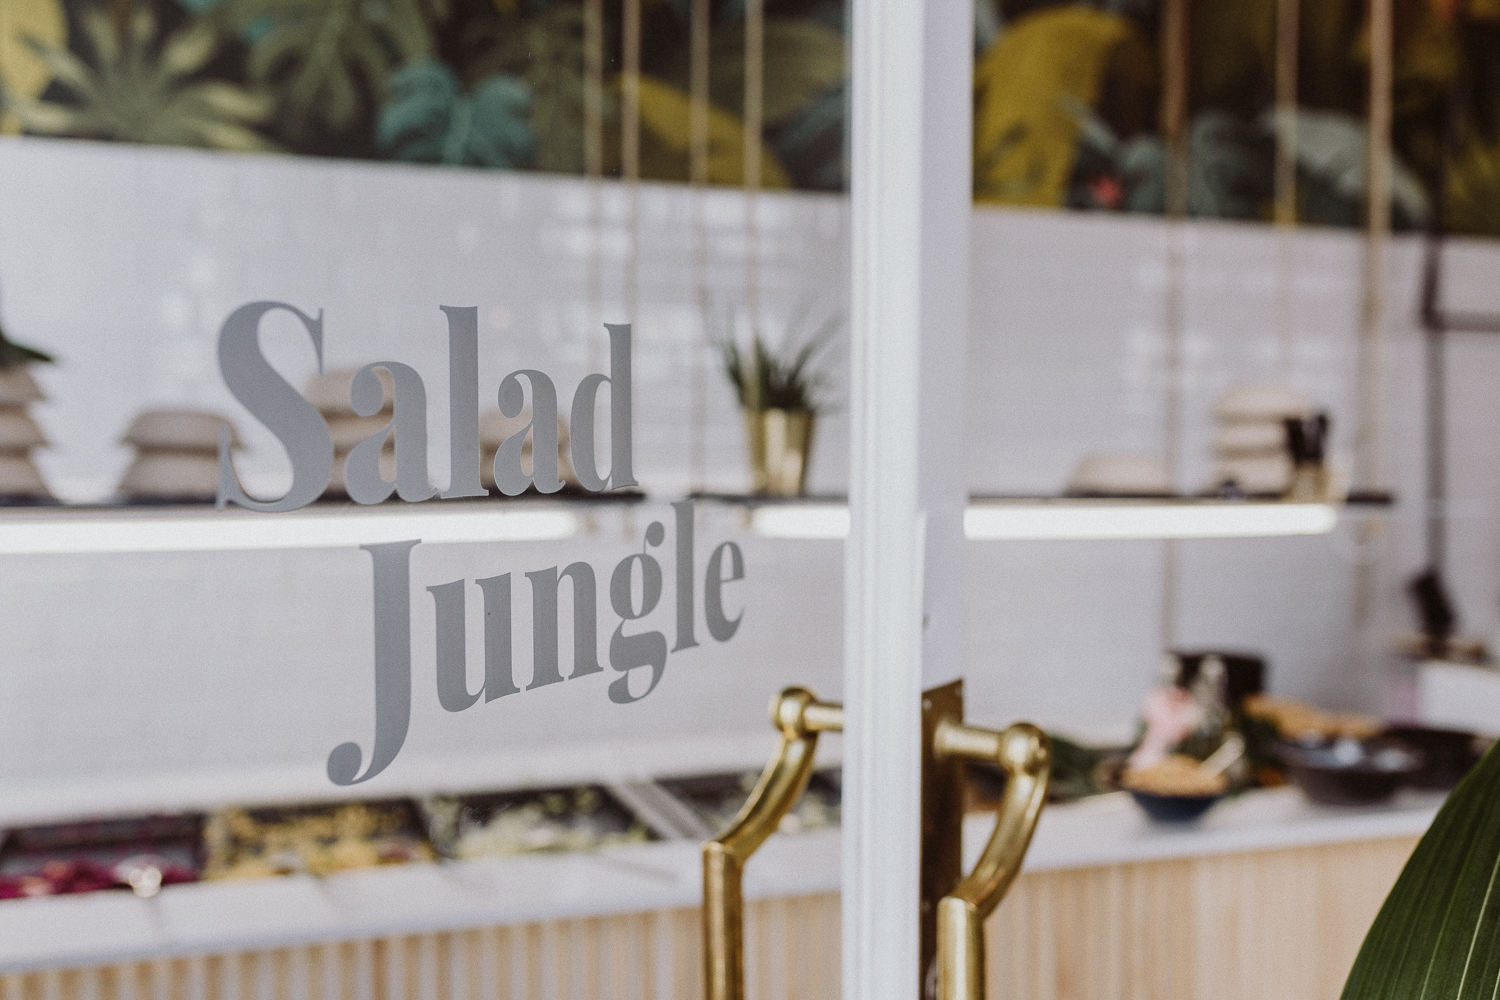 Vienna Picks: Salad Jungle, Salatbar Wien | Love Daily Dose